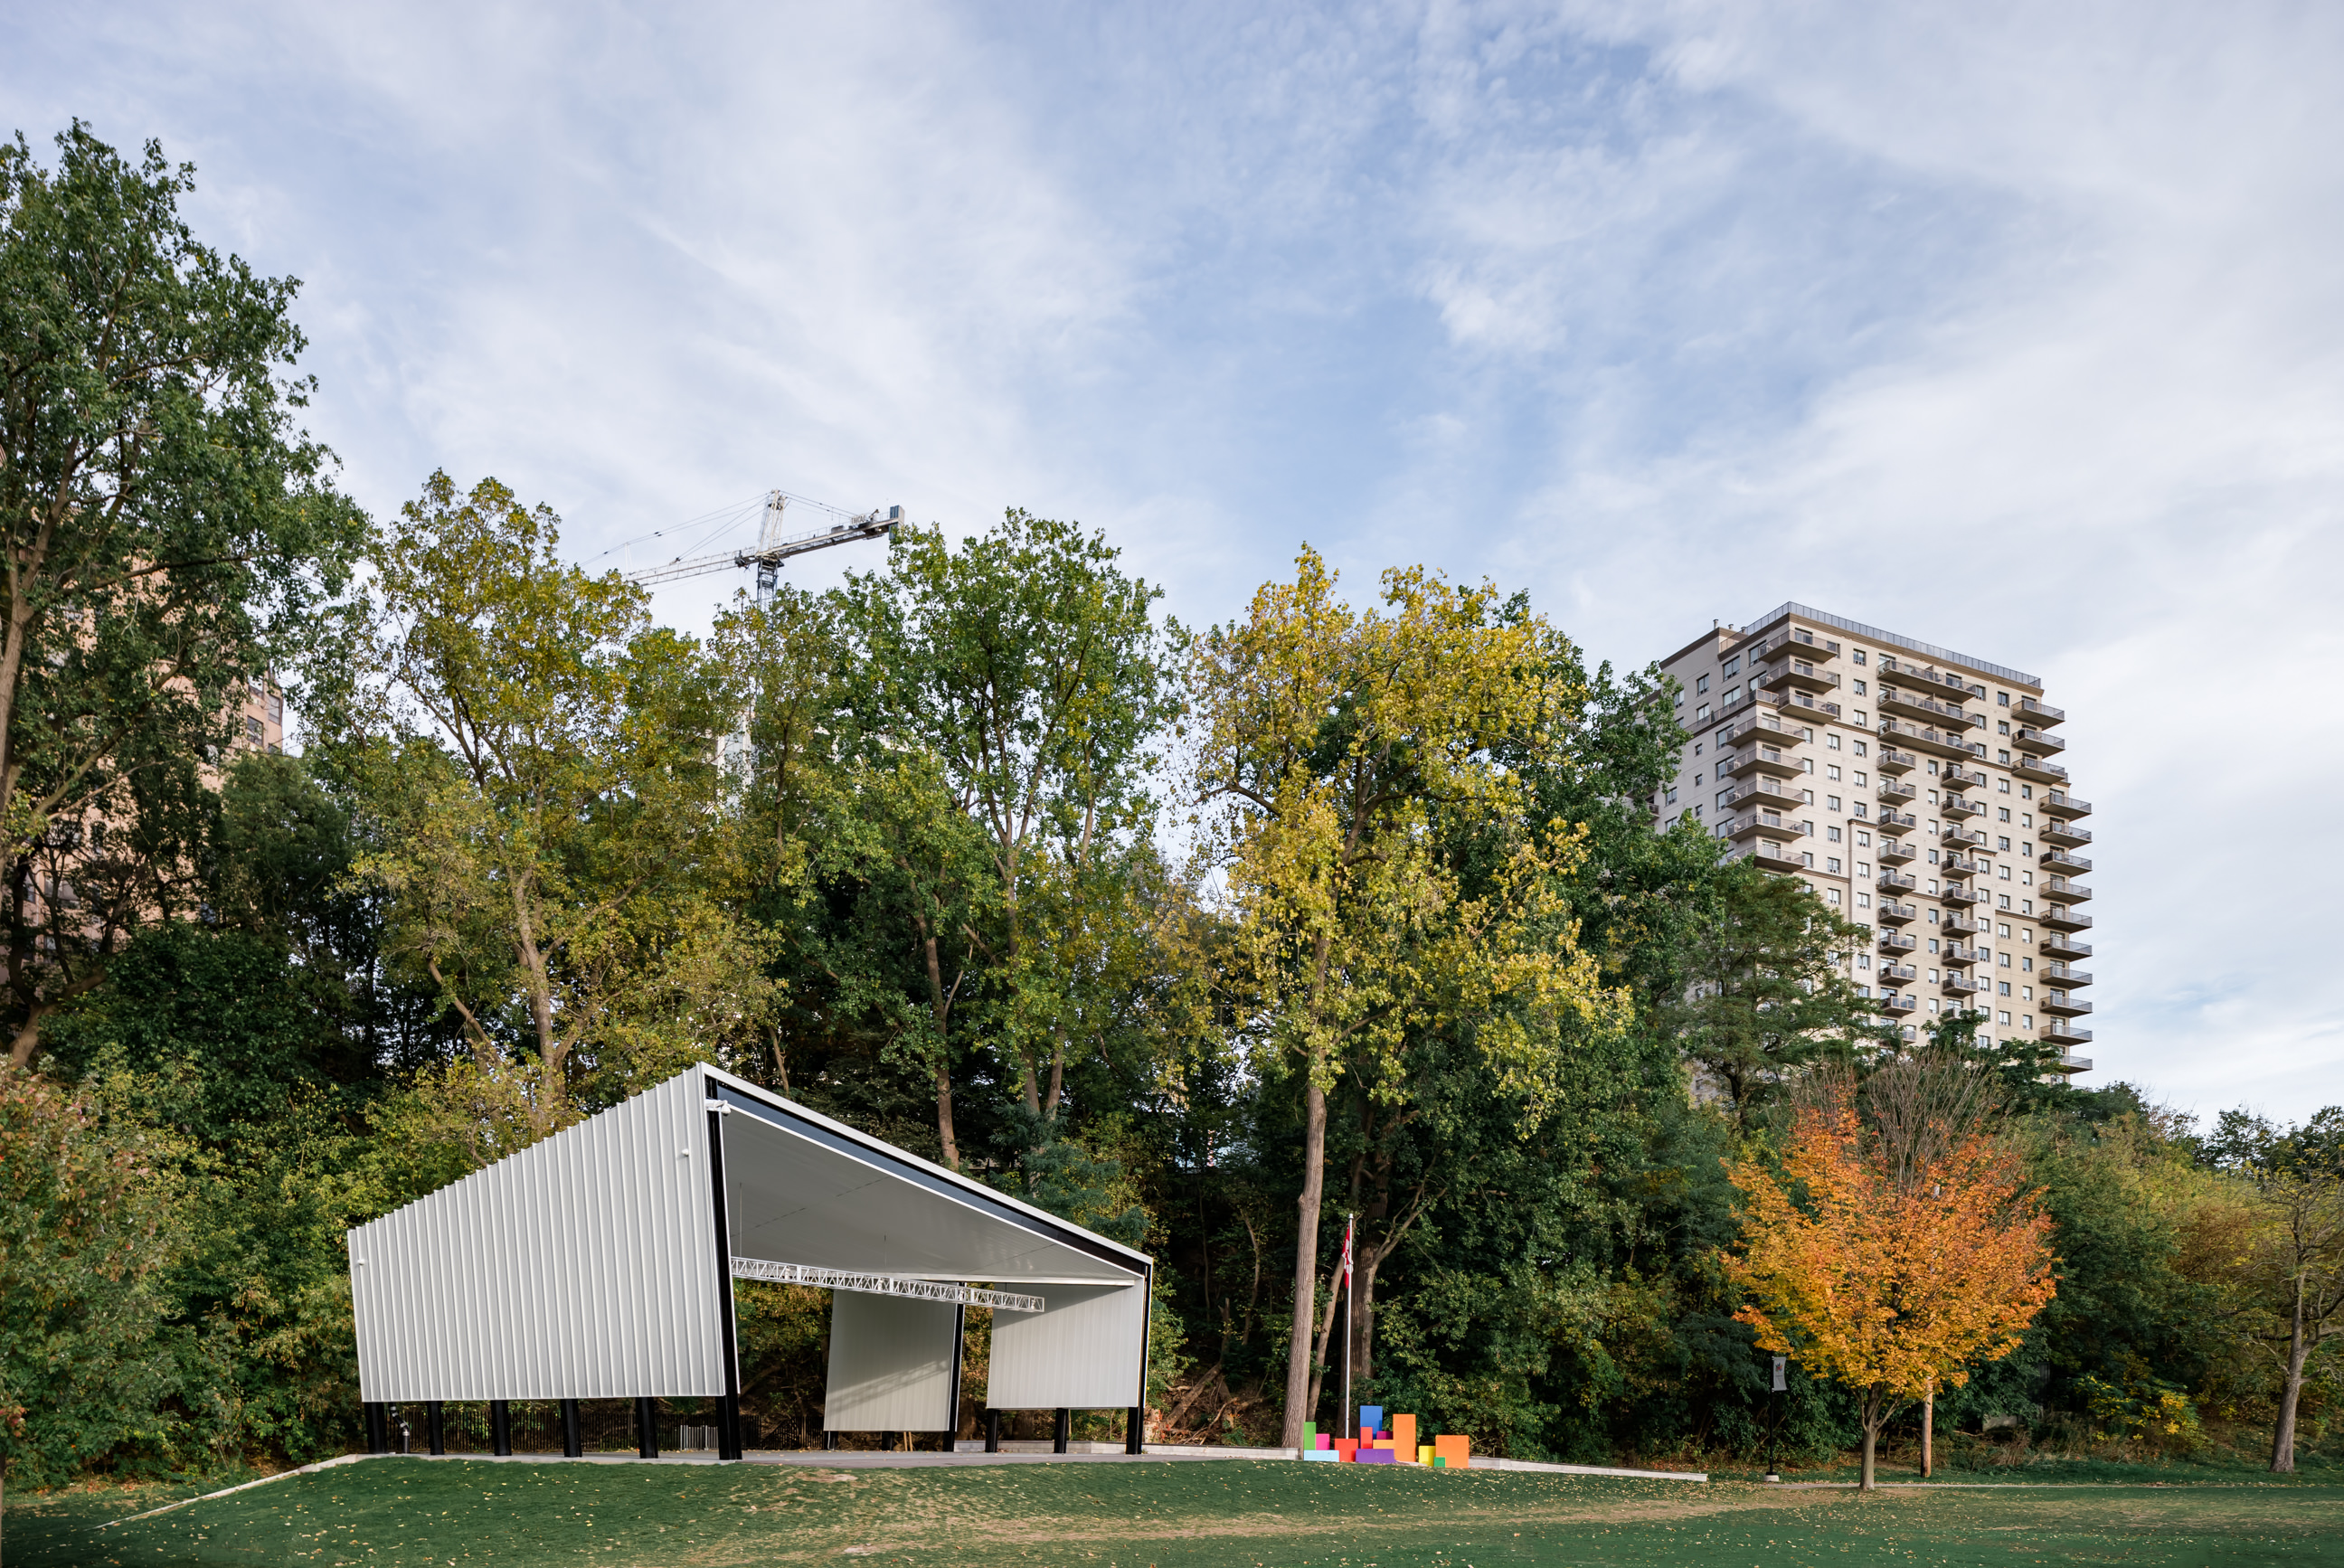 Canada 150 Pavilion at Harris Park / Matter Architectural Studio Inc.